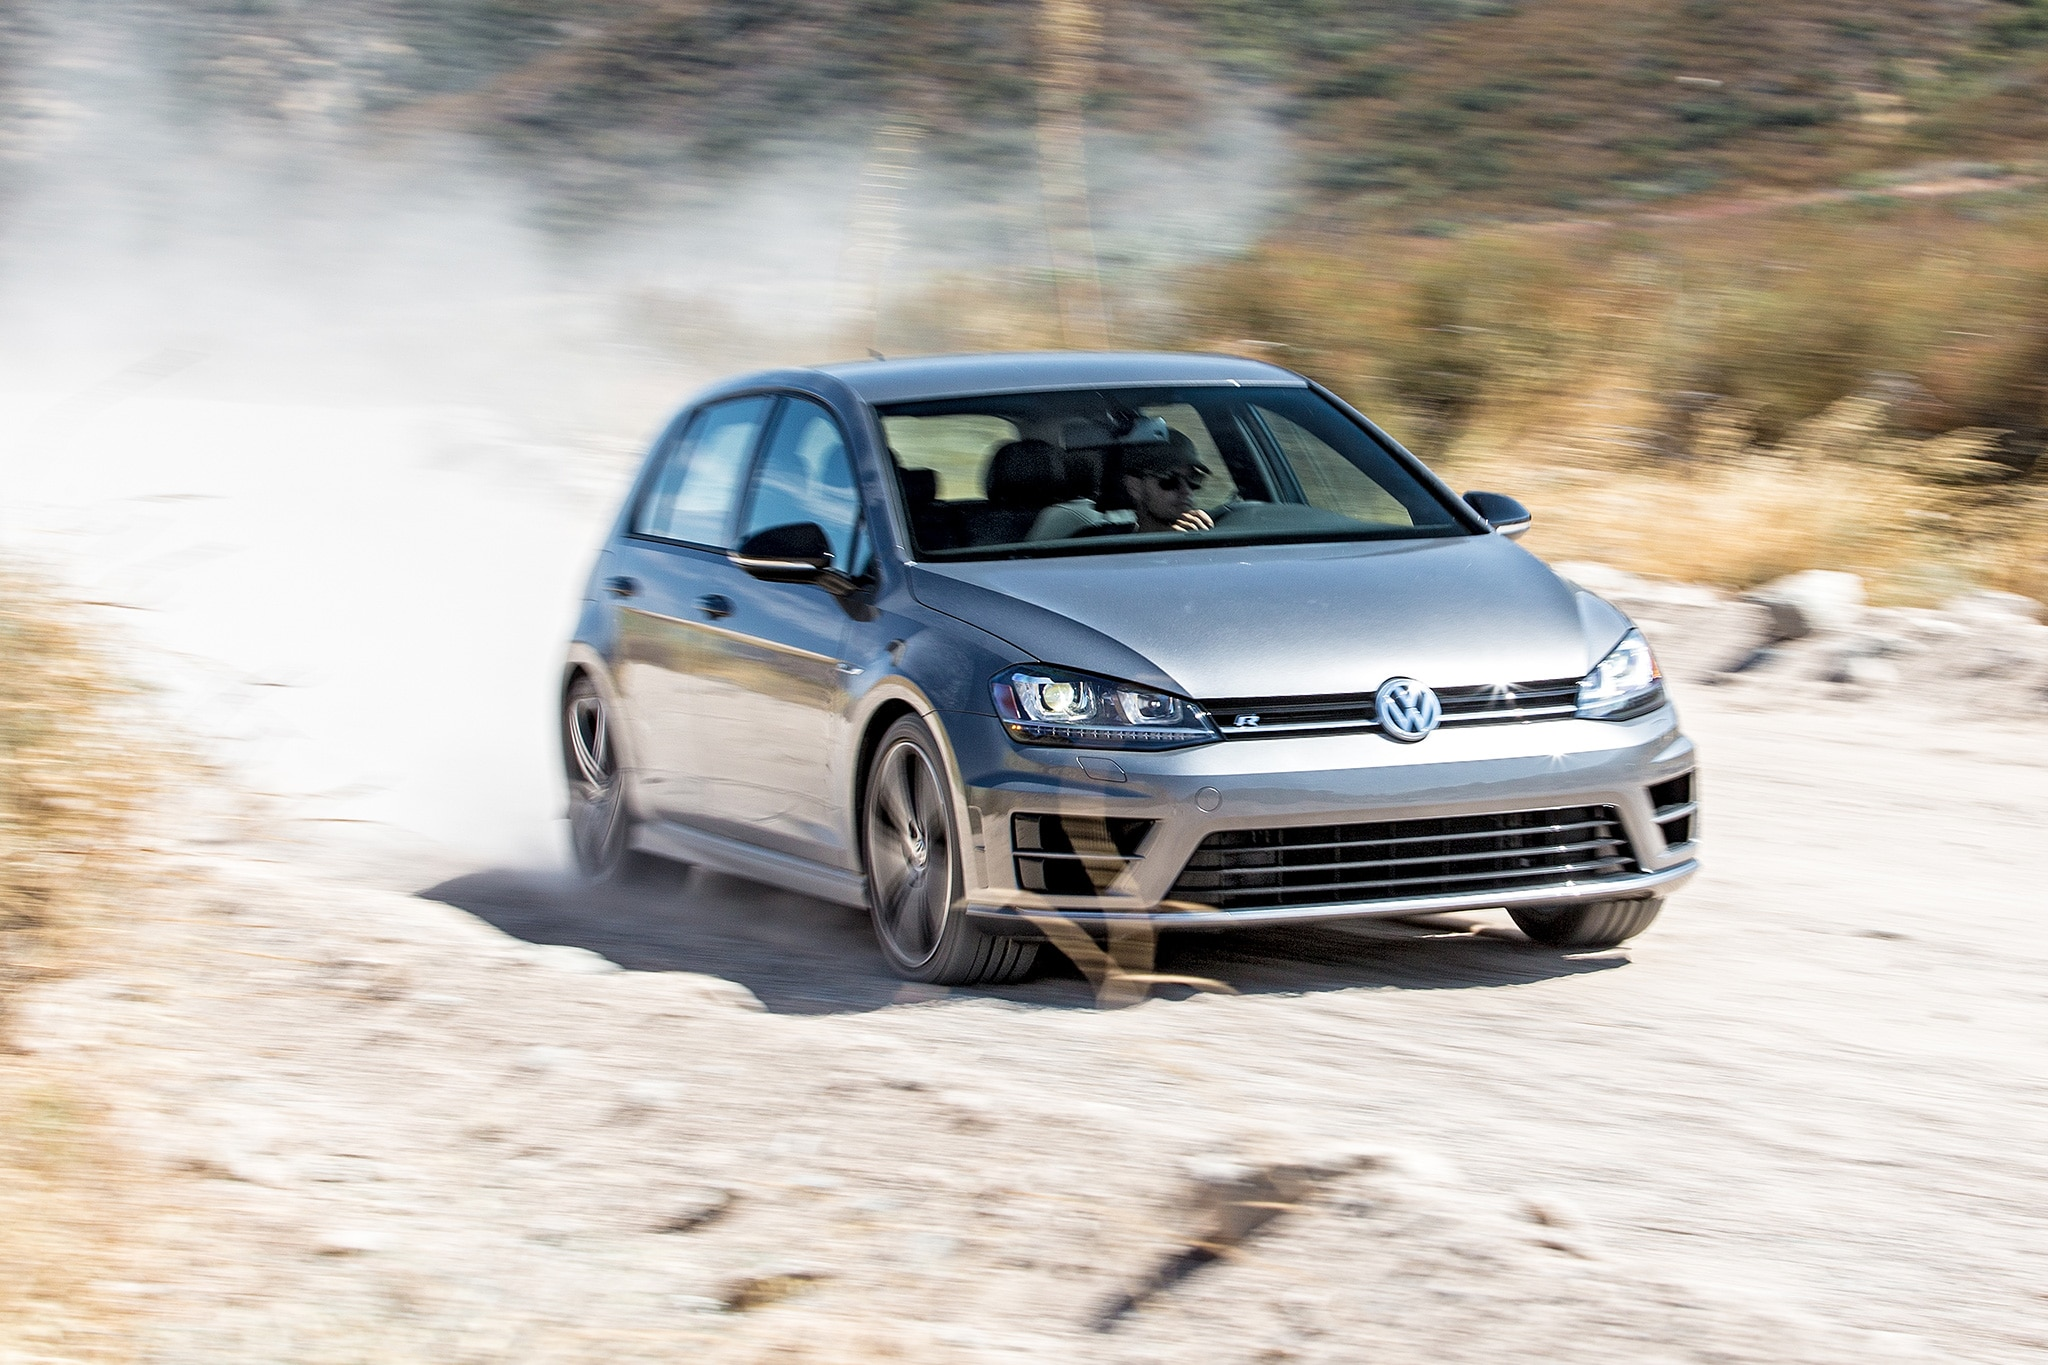 2016 Volkswagen Golf R Front Three Quarter In Motion 06